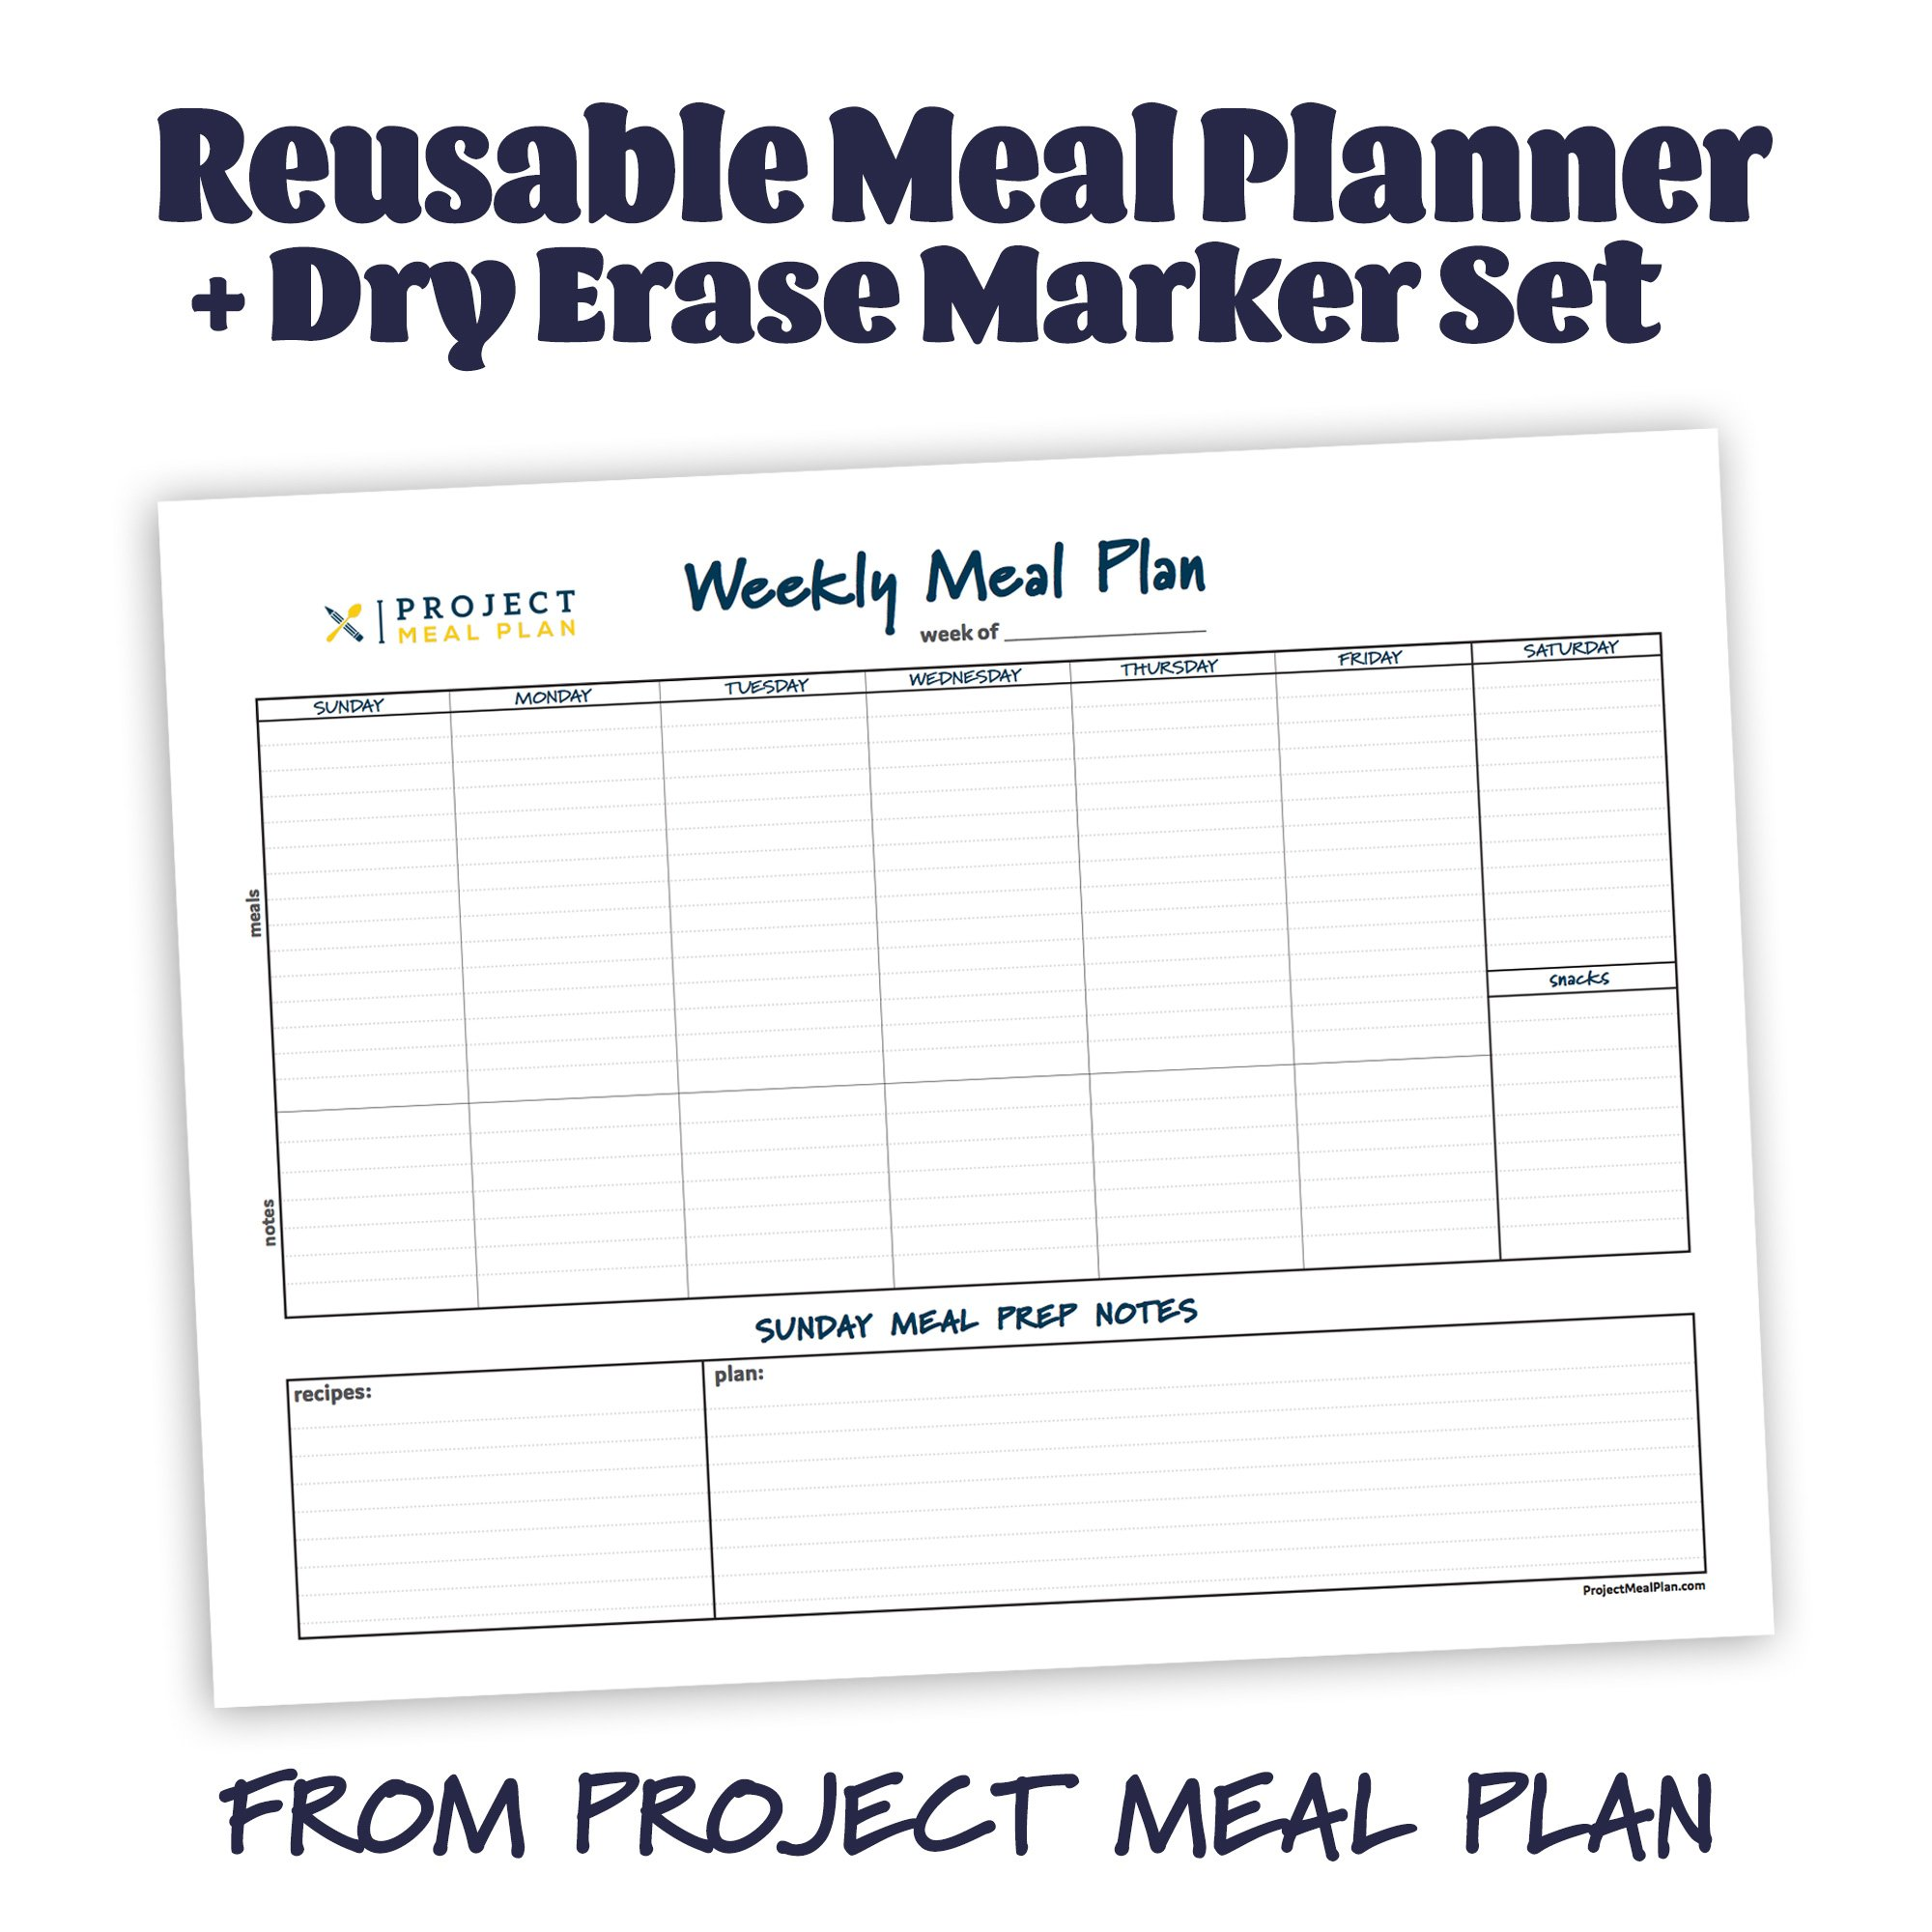 "An image showing the meal planner and title, ""Reusable Meal Planner + Dry Erase Marker Set From Project Meal Plan"""